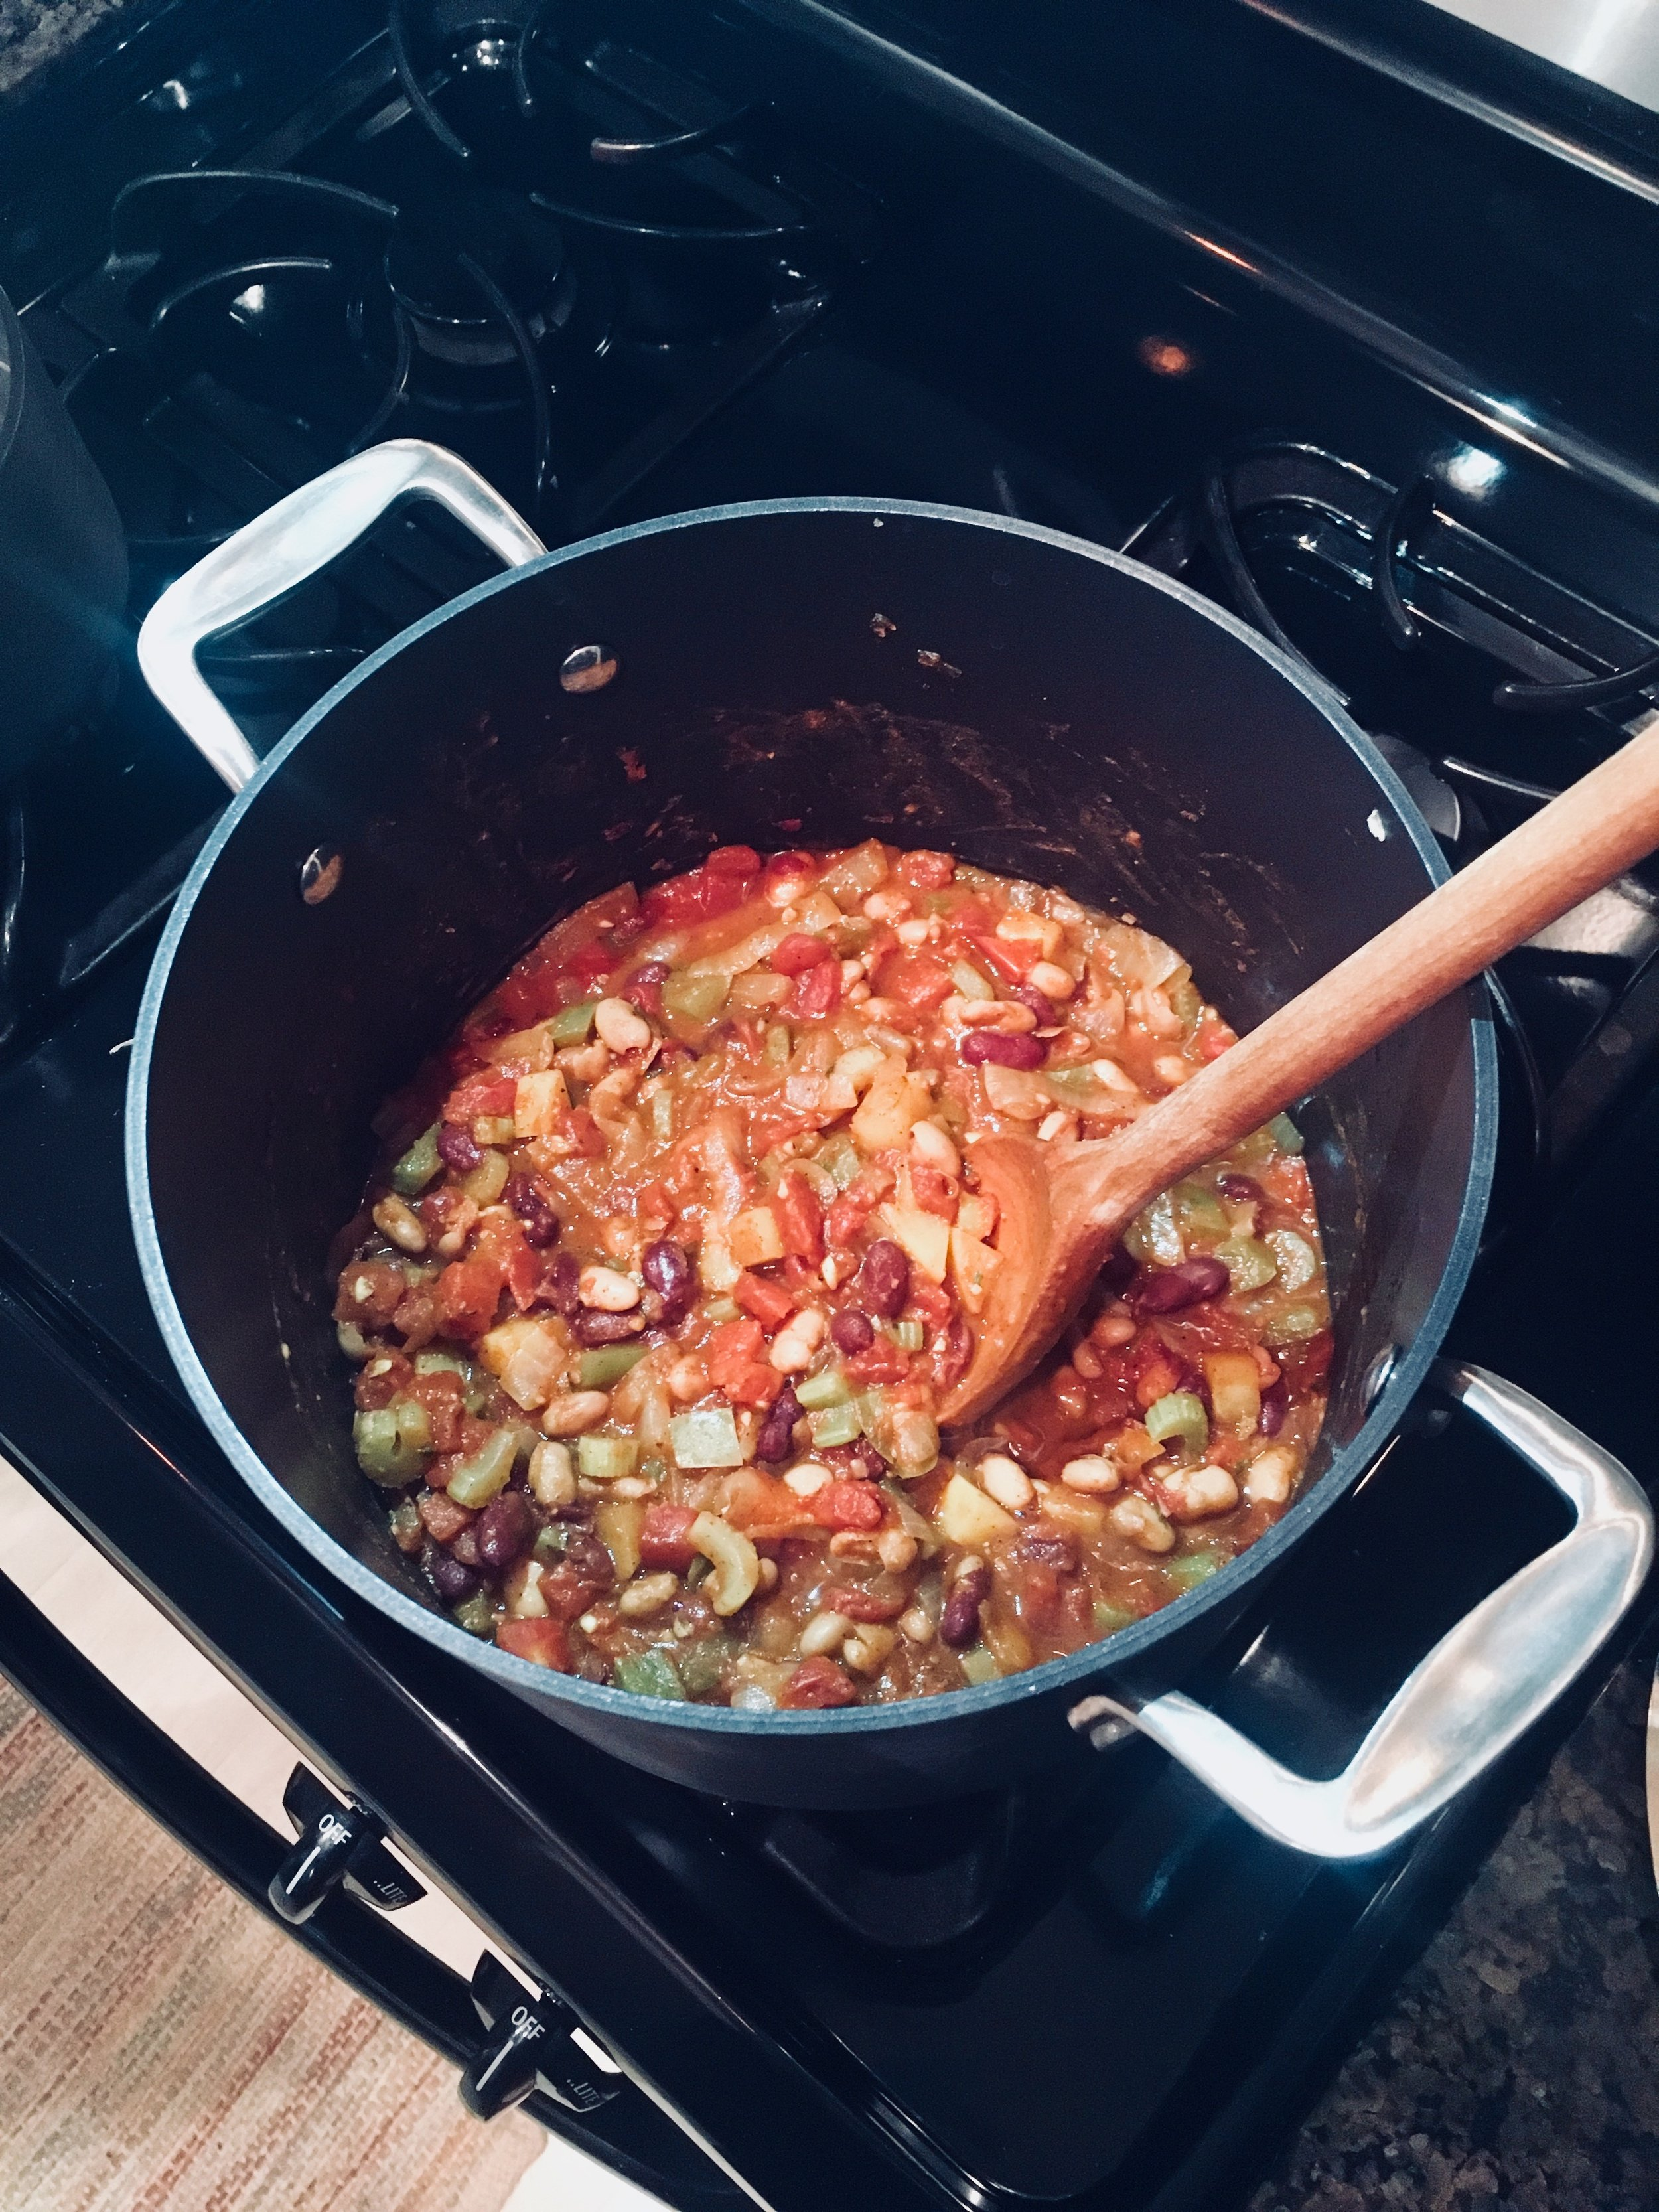 Yum, veggie chili. We opted to add celery and substitute rutabaga for carrots in this batch. It was sooooo good!